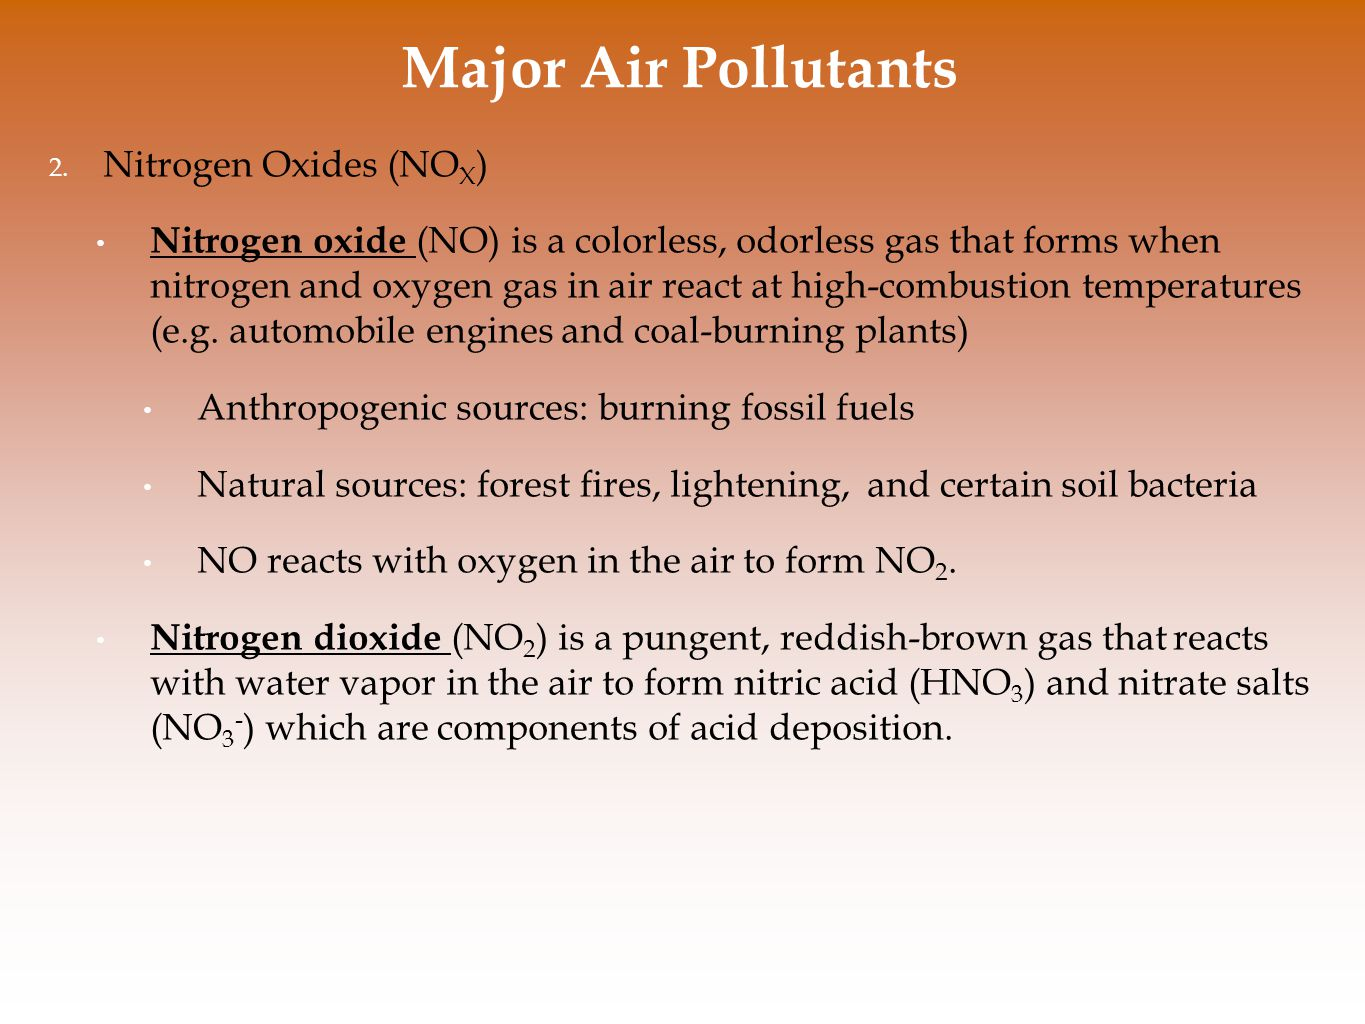 Air Pollution and Stratospheric Ozone Depletion - ppt video online ...